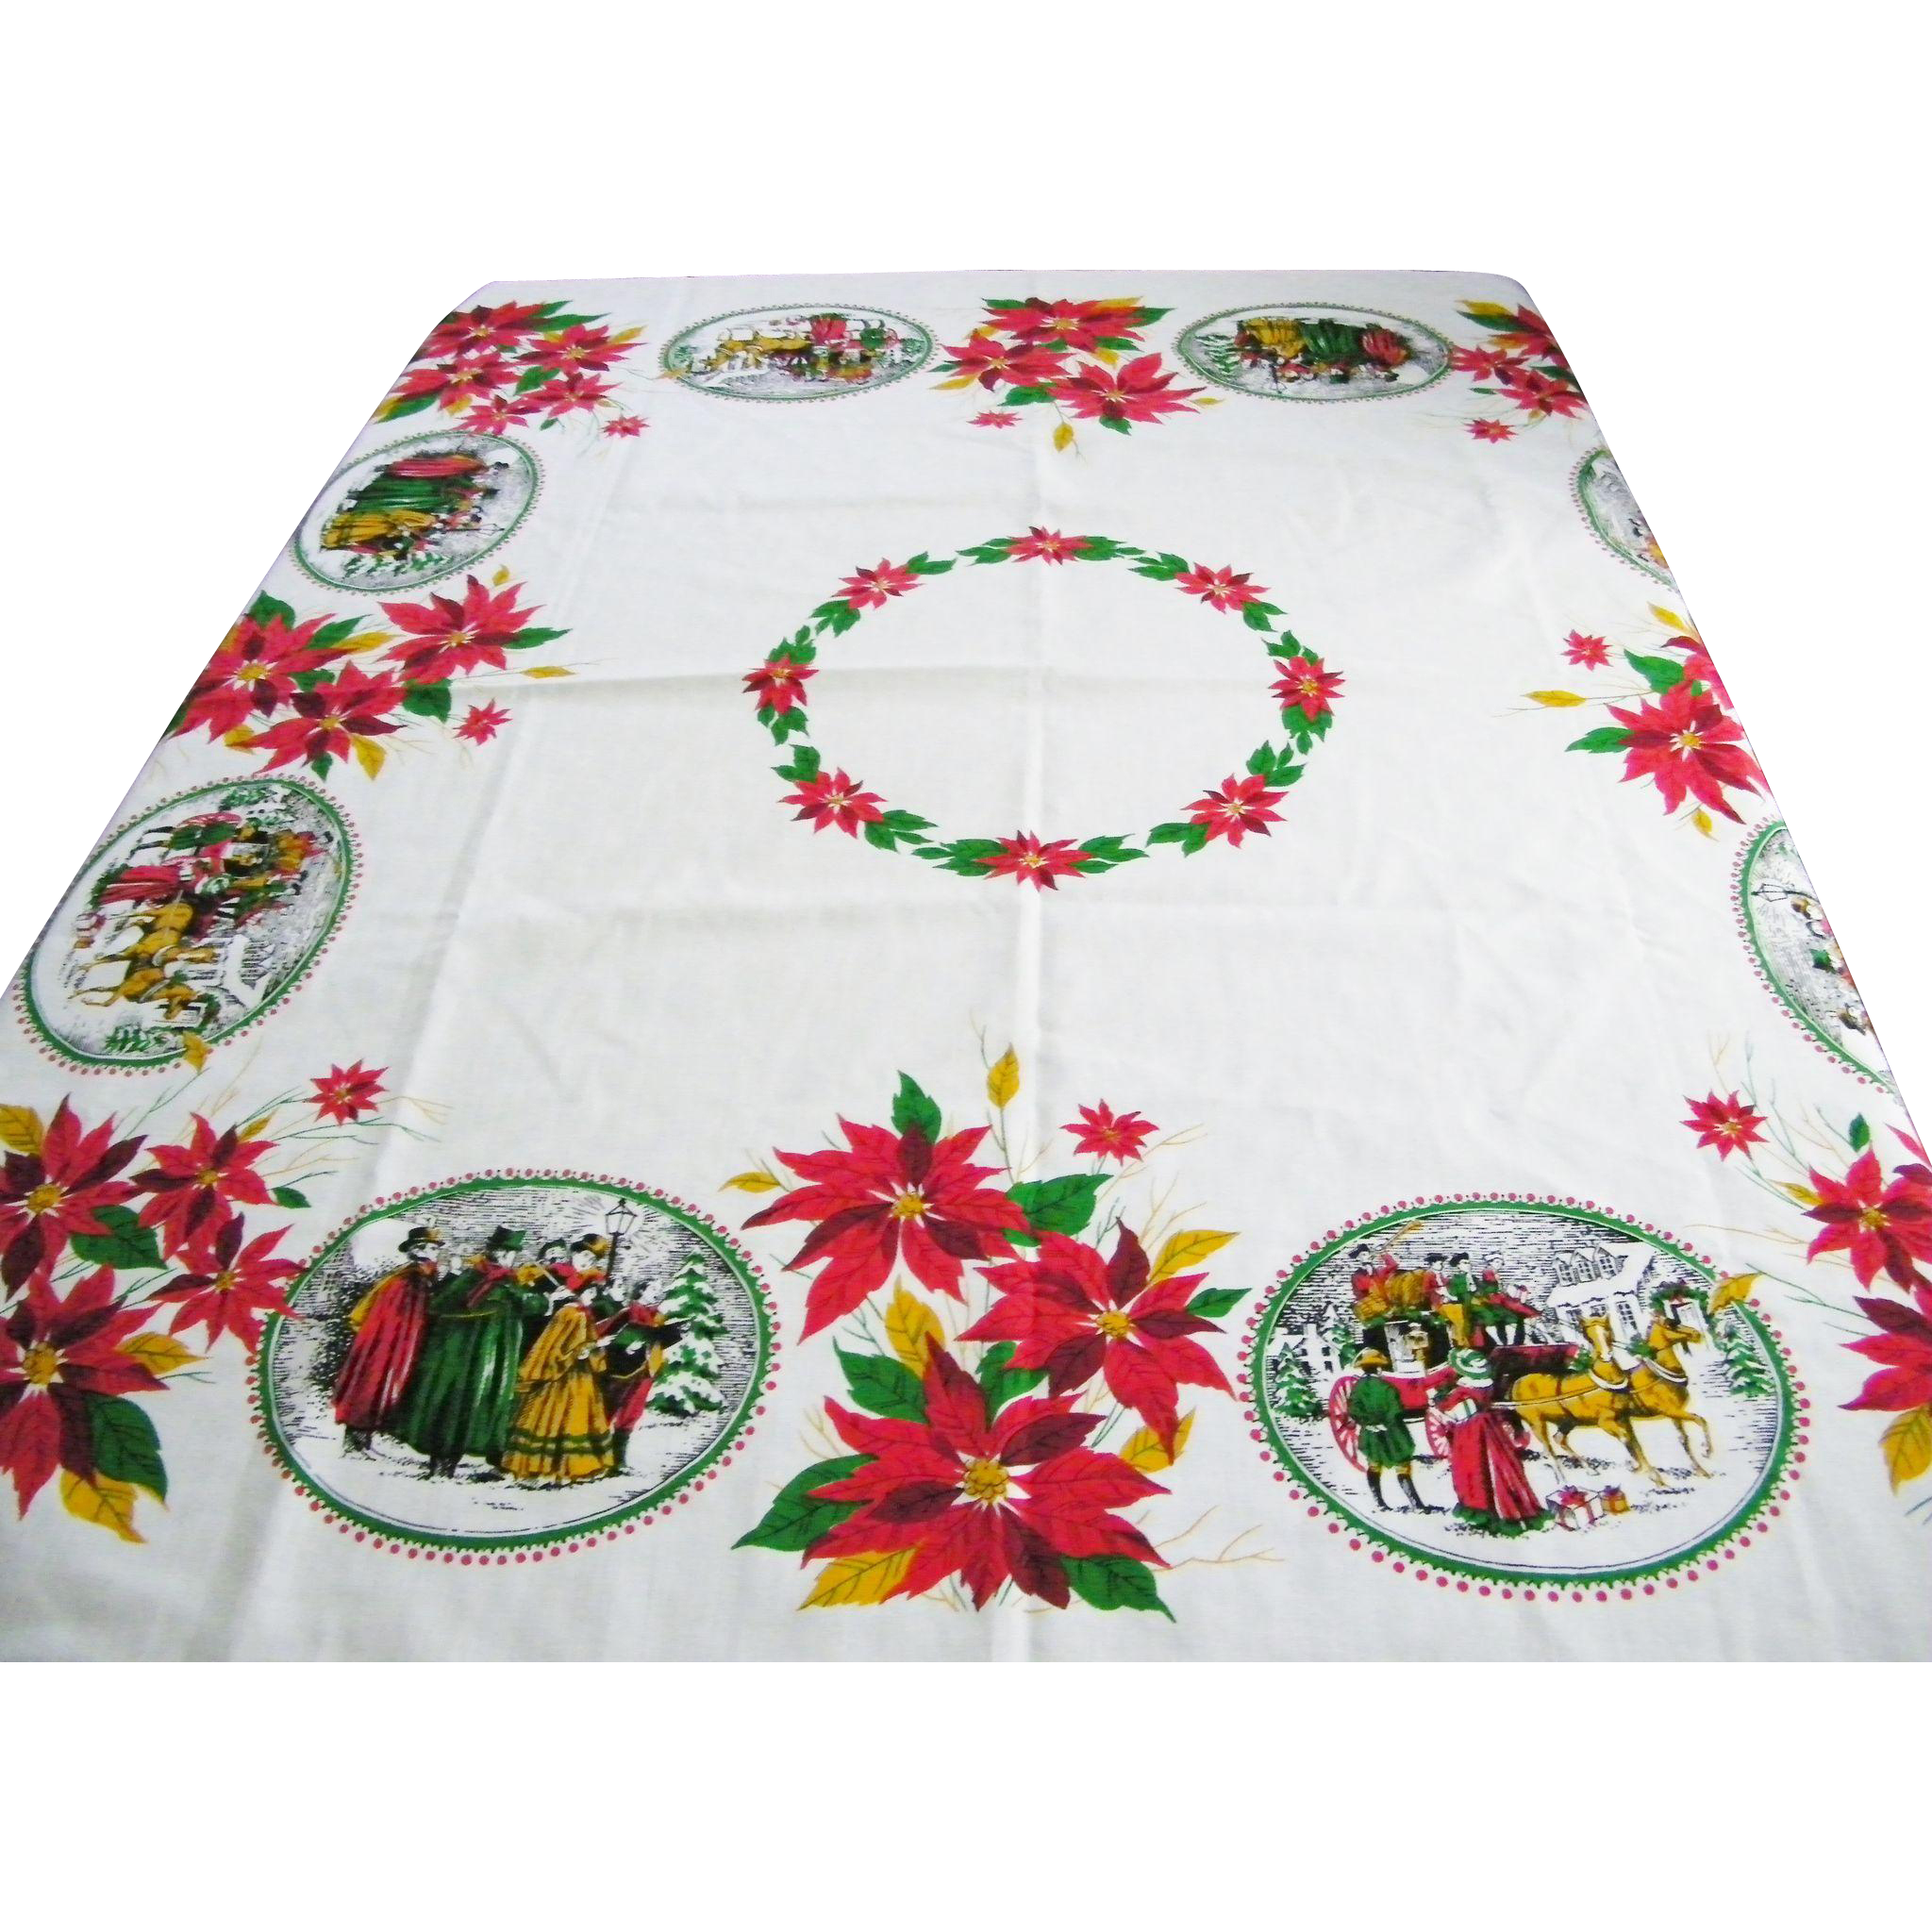 Vintage Christmas Tablecloth Poinsettias Carolers Mint